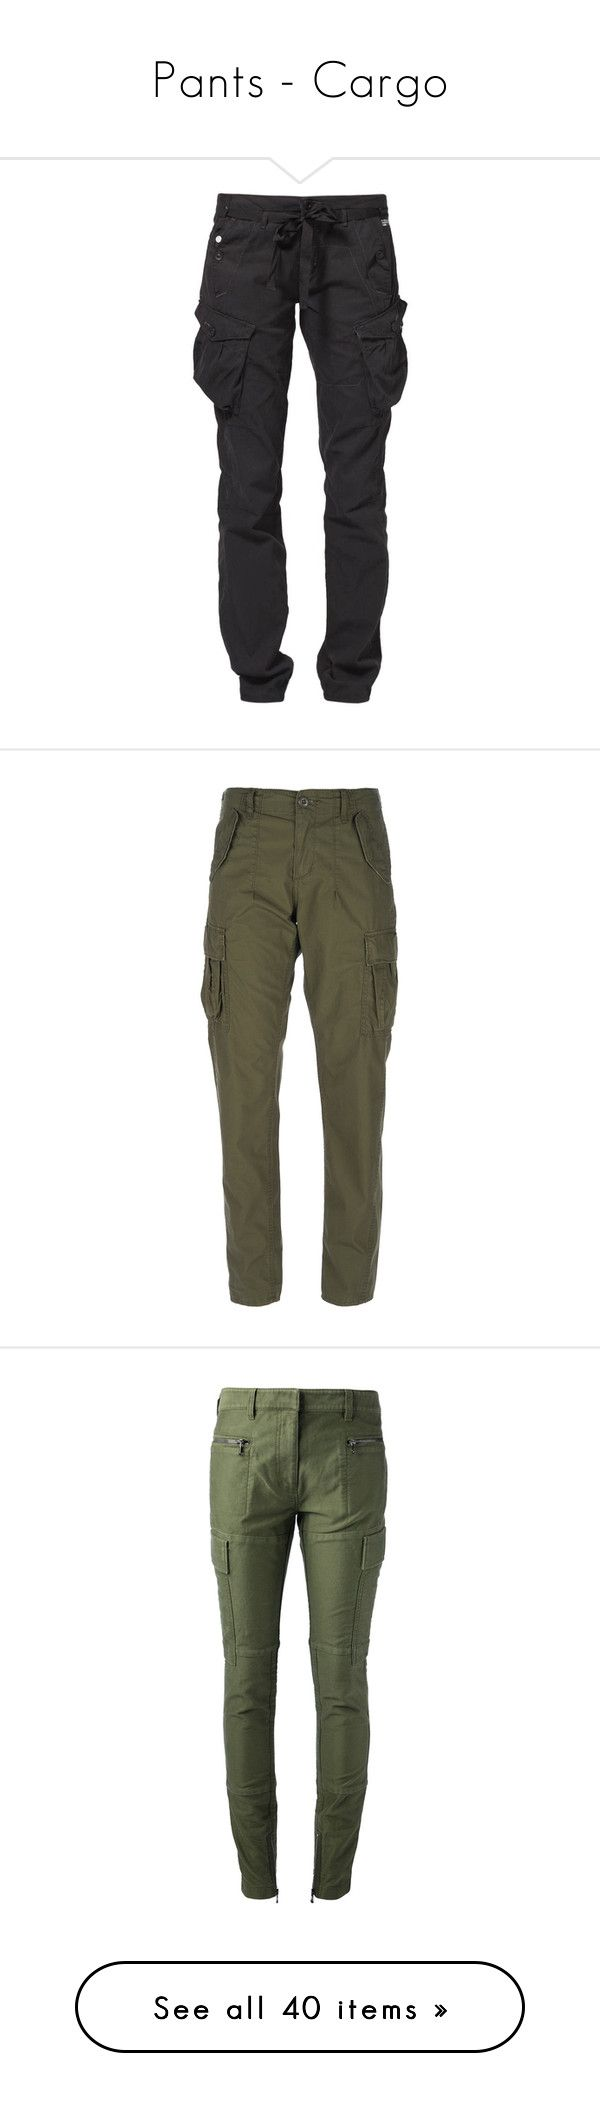 """Pants - Cargo"" by giovanna1995 ❤ liked on Polyvore featuring GREEN, military, pants, cargo, bottoms, jeans, black, trousers, women's trousers and g star raw pants"